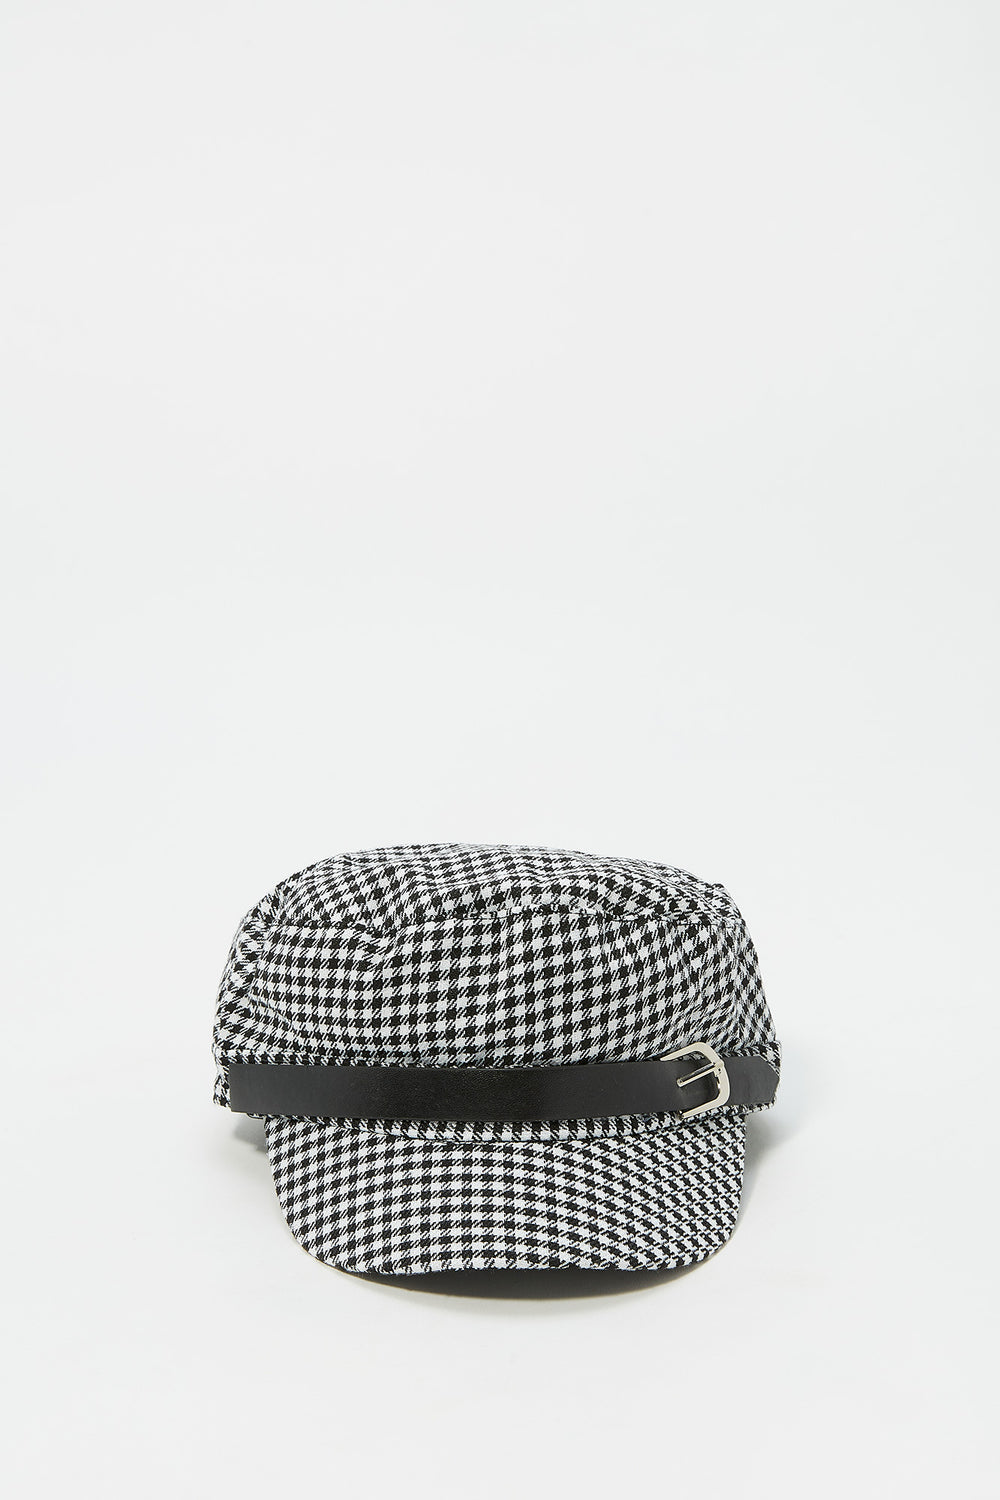 Printed Baker Boy Buckle Band Hat Black with White